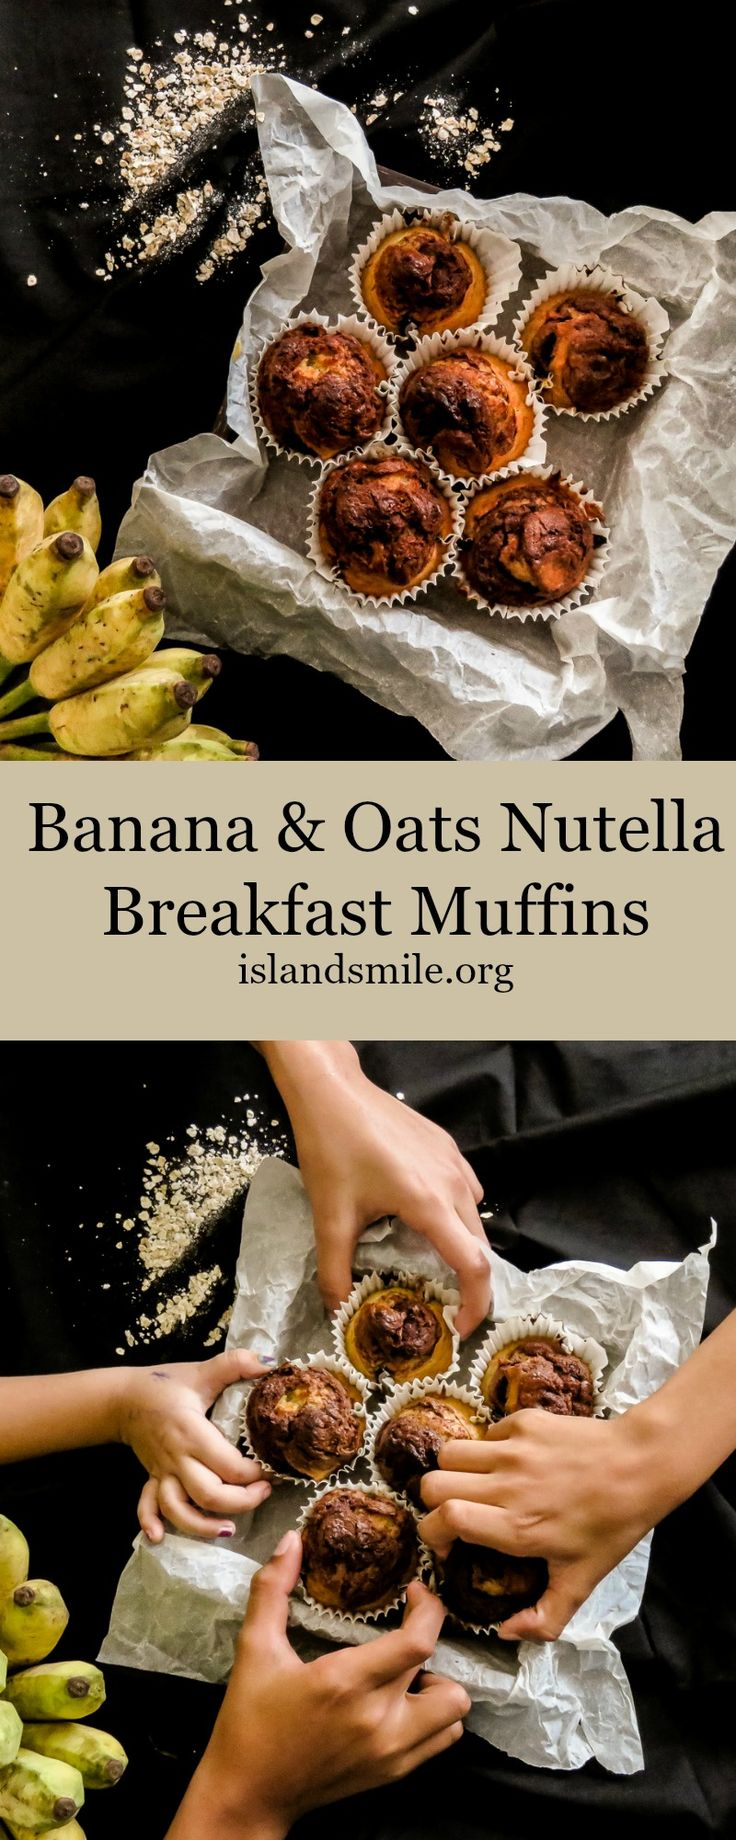 When Breakfast has to be quick, easy and kid friendly, this Banana and Oats with a swirl of Nutella fits in perfectly as a go to Breakfast especially this holiday season. Its the easiest breakfast to make. The recipe comes with a how-to images makimg it easier to follow.